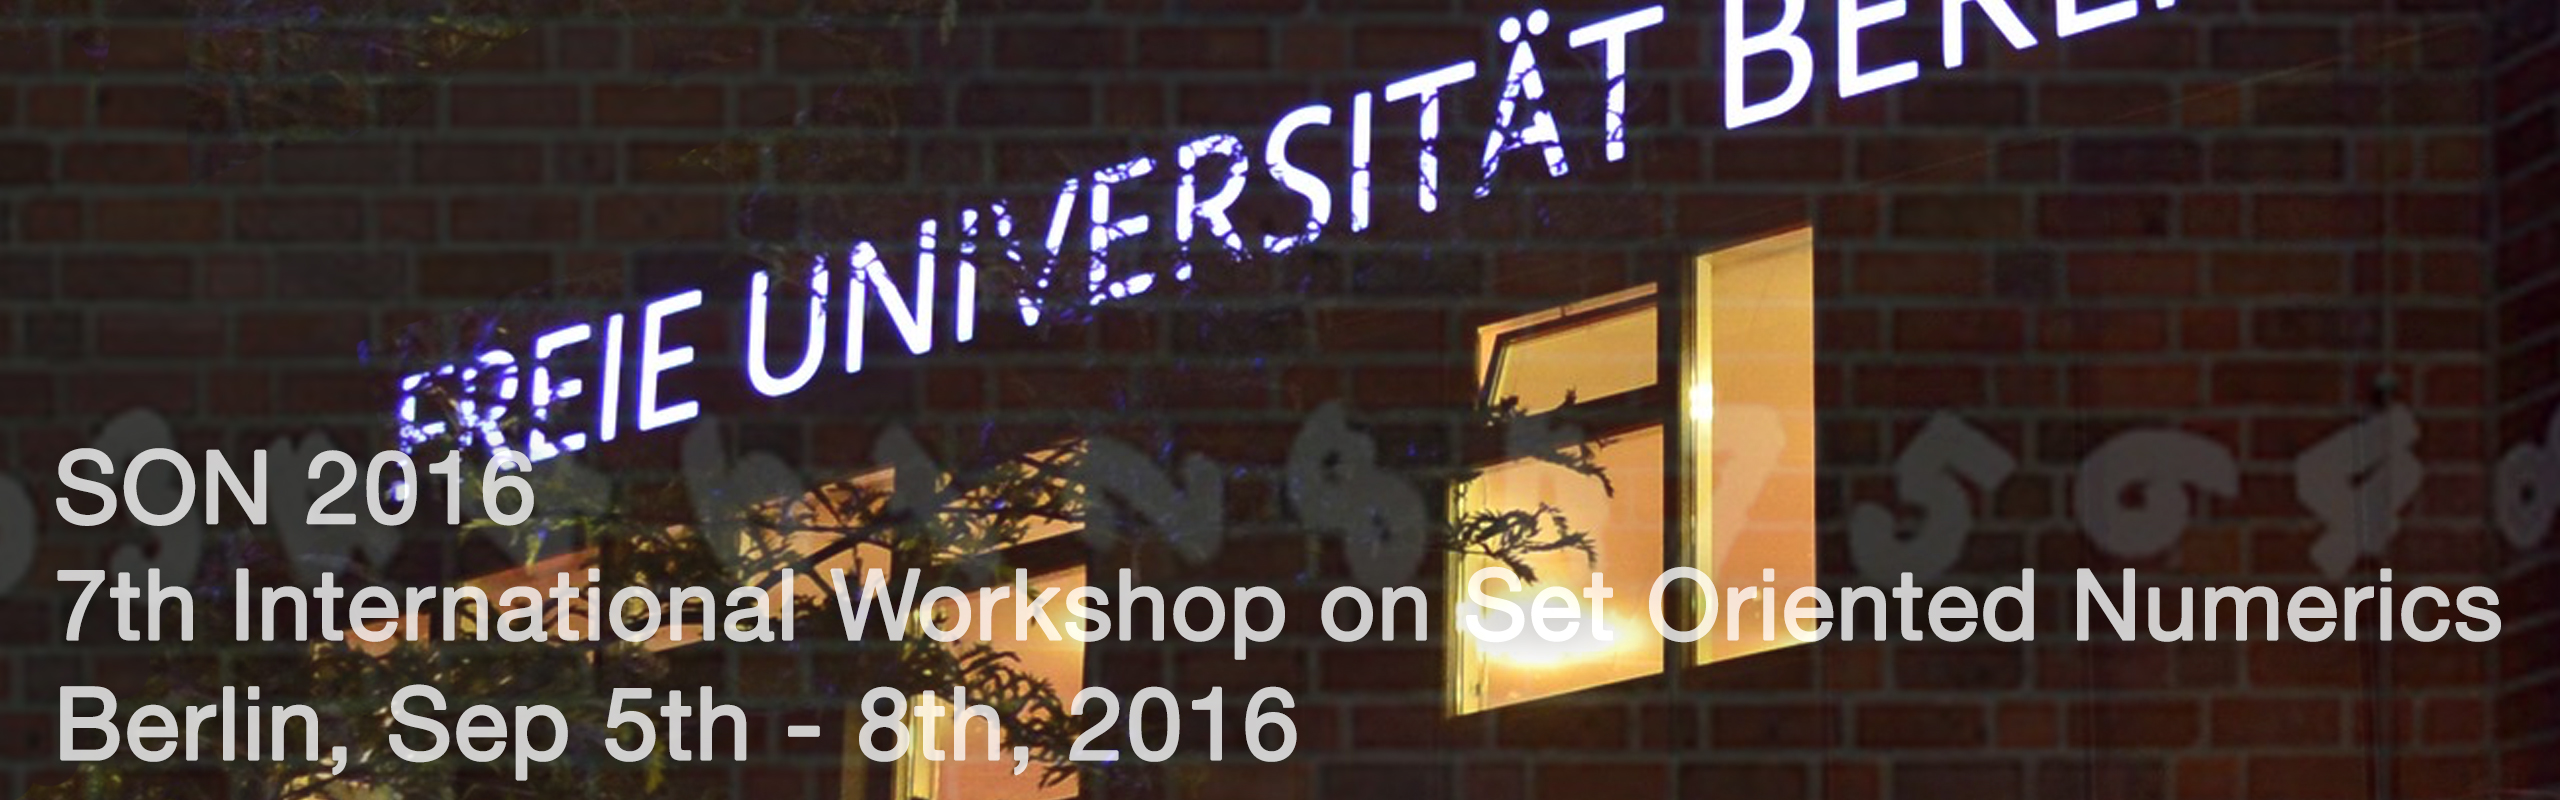 SON 2016 - 7th International Workshop on Set Oriented Numerics